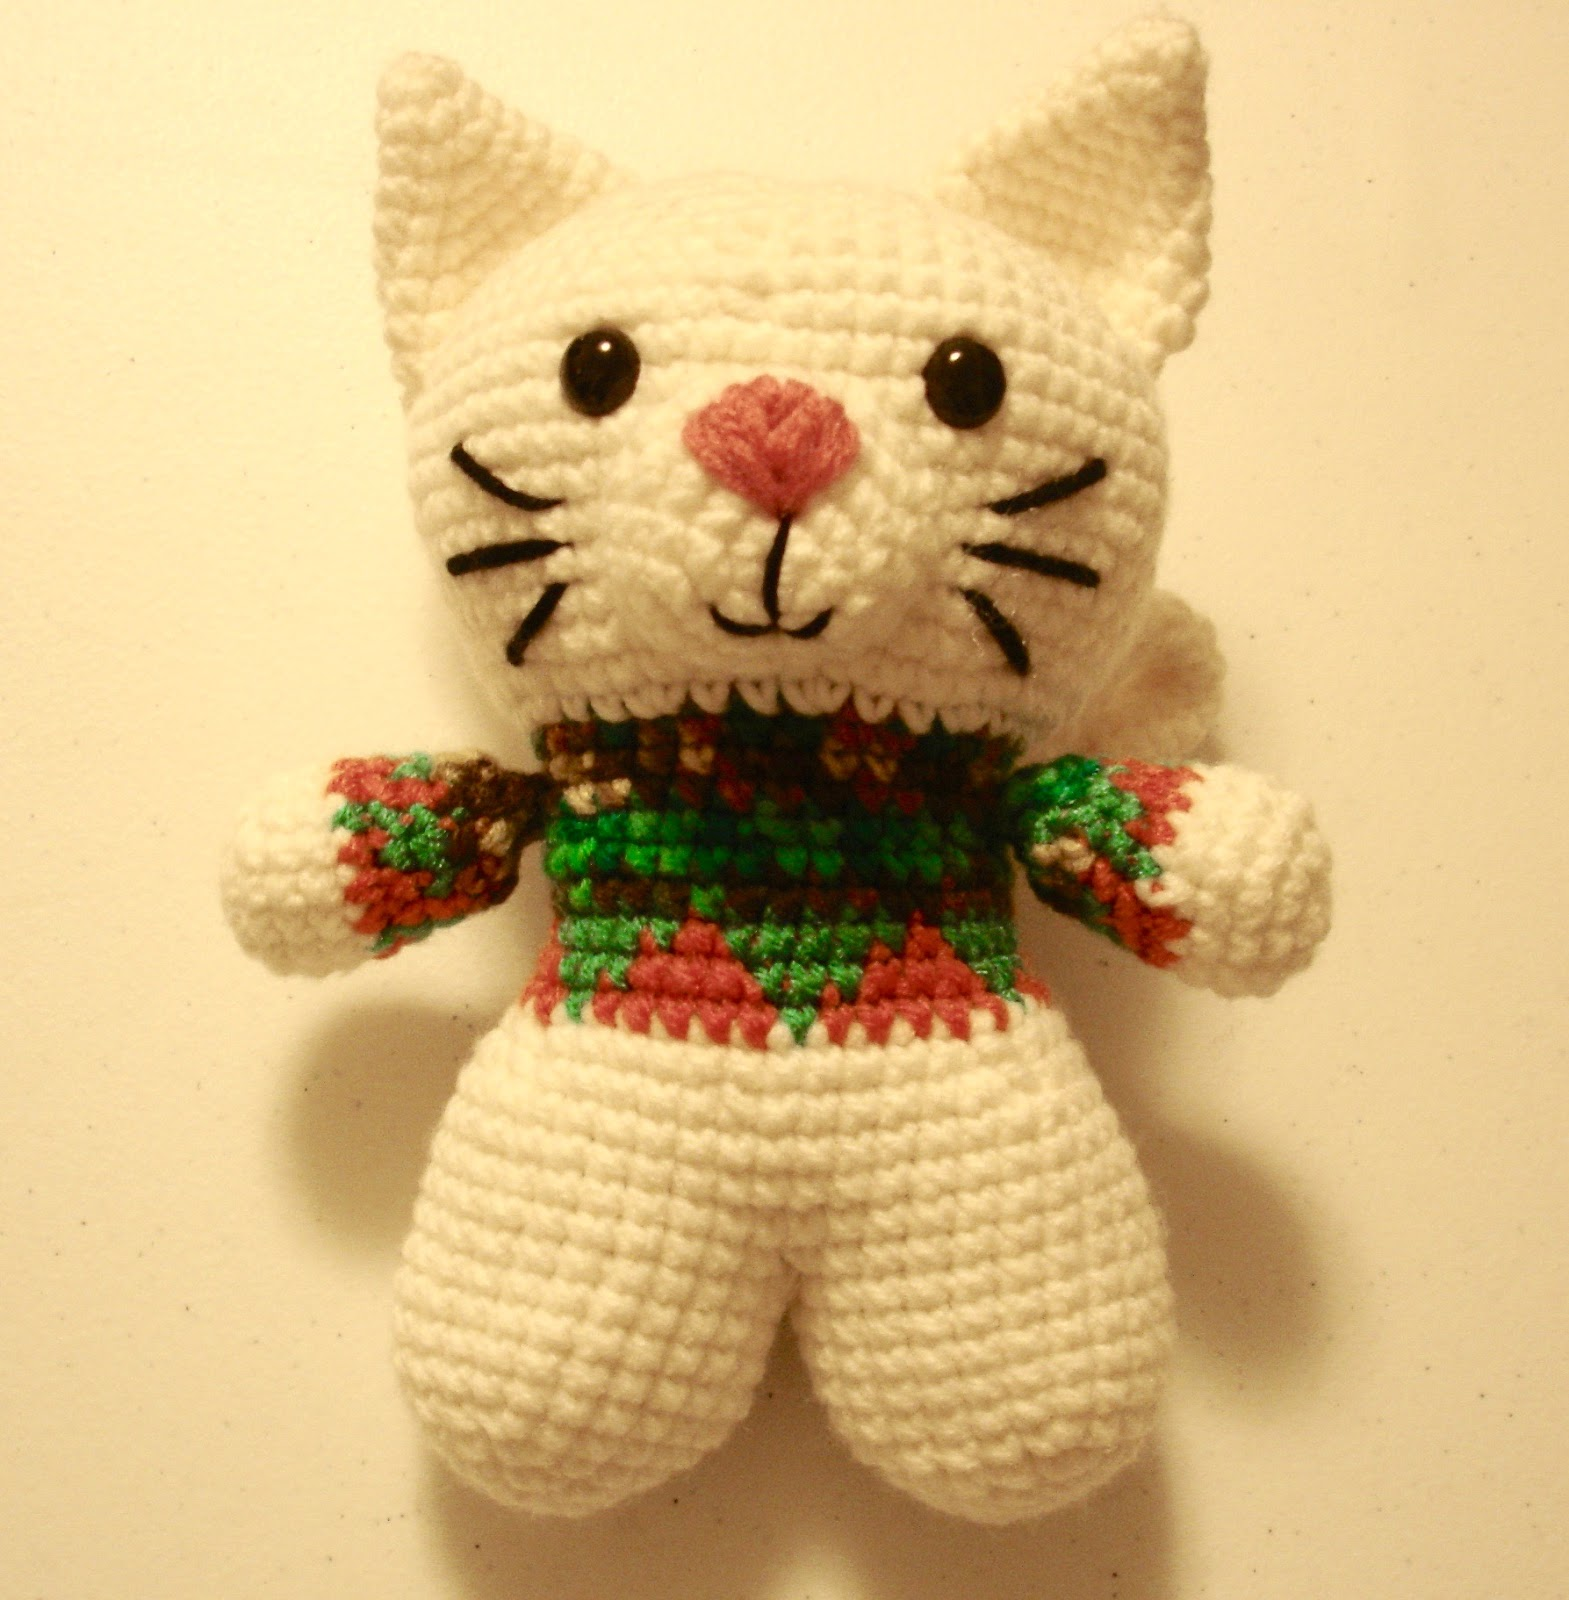 Hello Casper Amigurumi Free Crochet Cat Pattern Crochet Kingdom